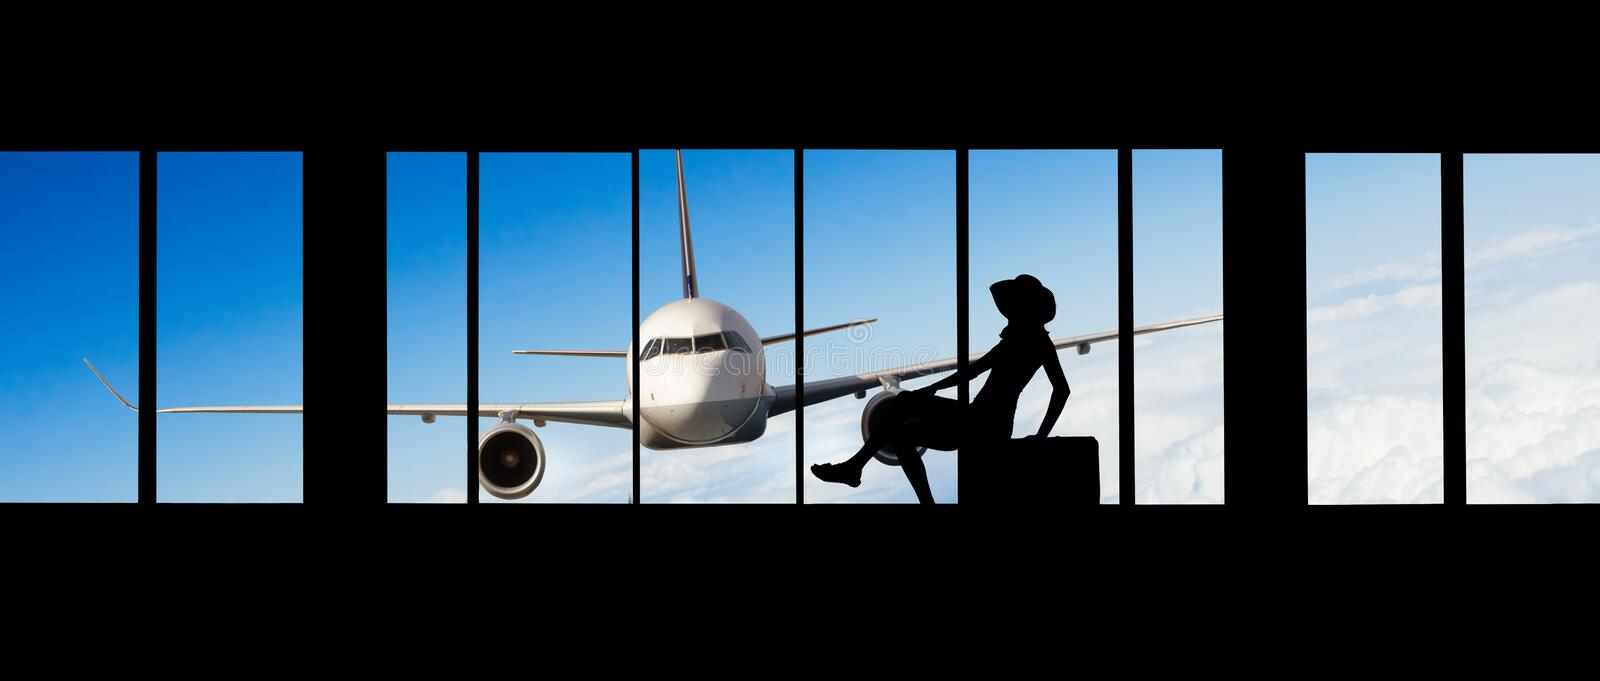 Woman silhouette at Airport - Concept of travel stock photo